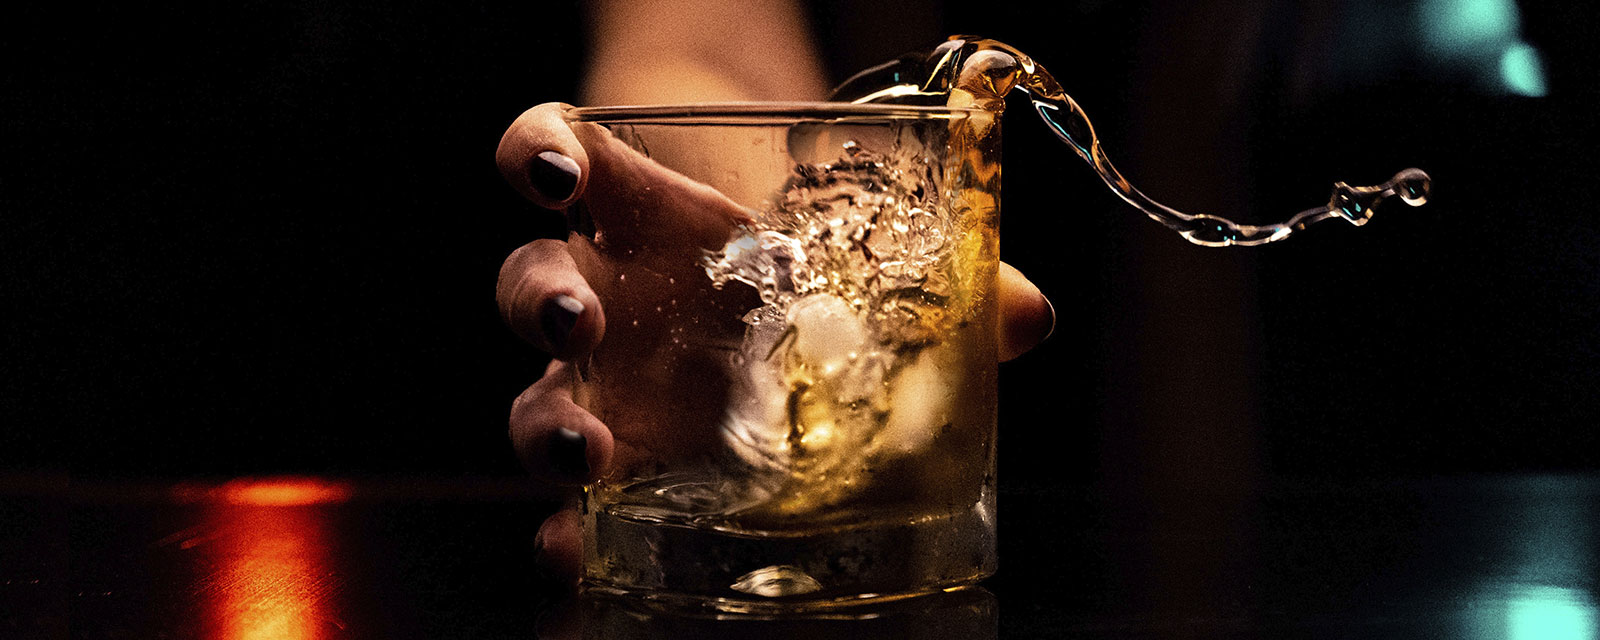 A hand holding a cocktail with the contents spilling out